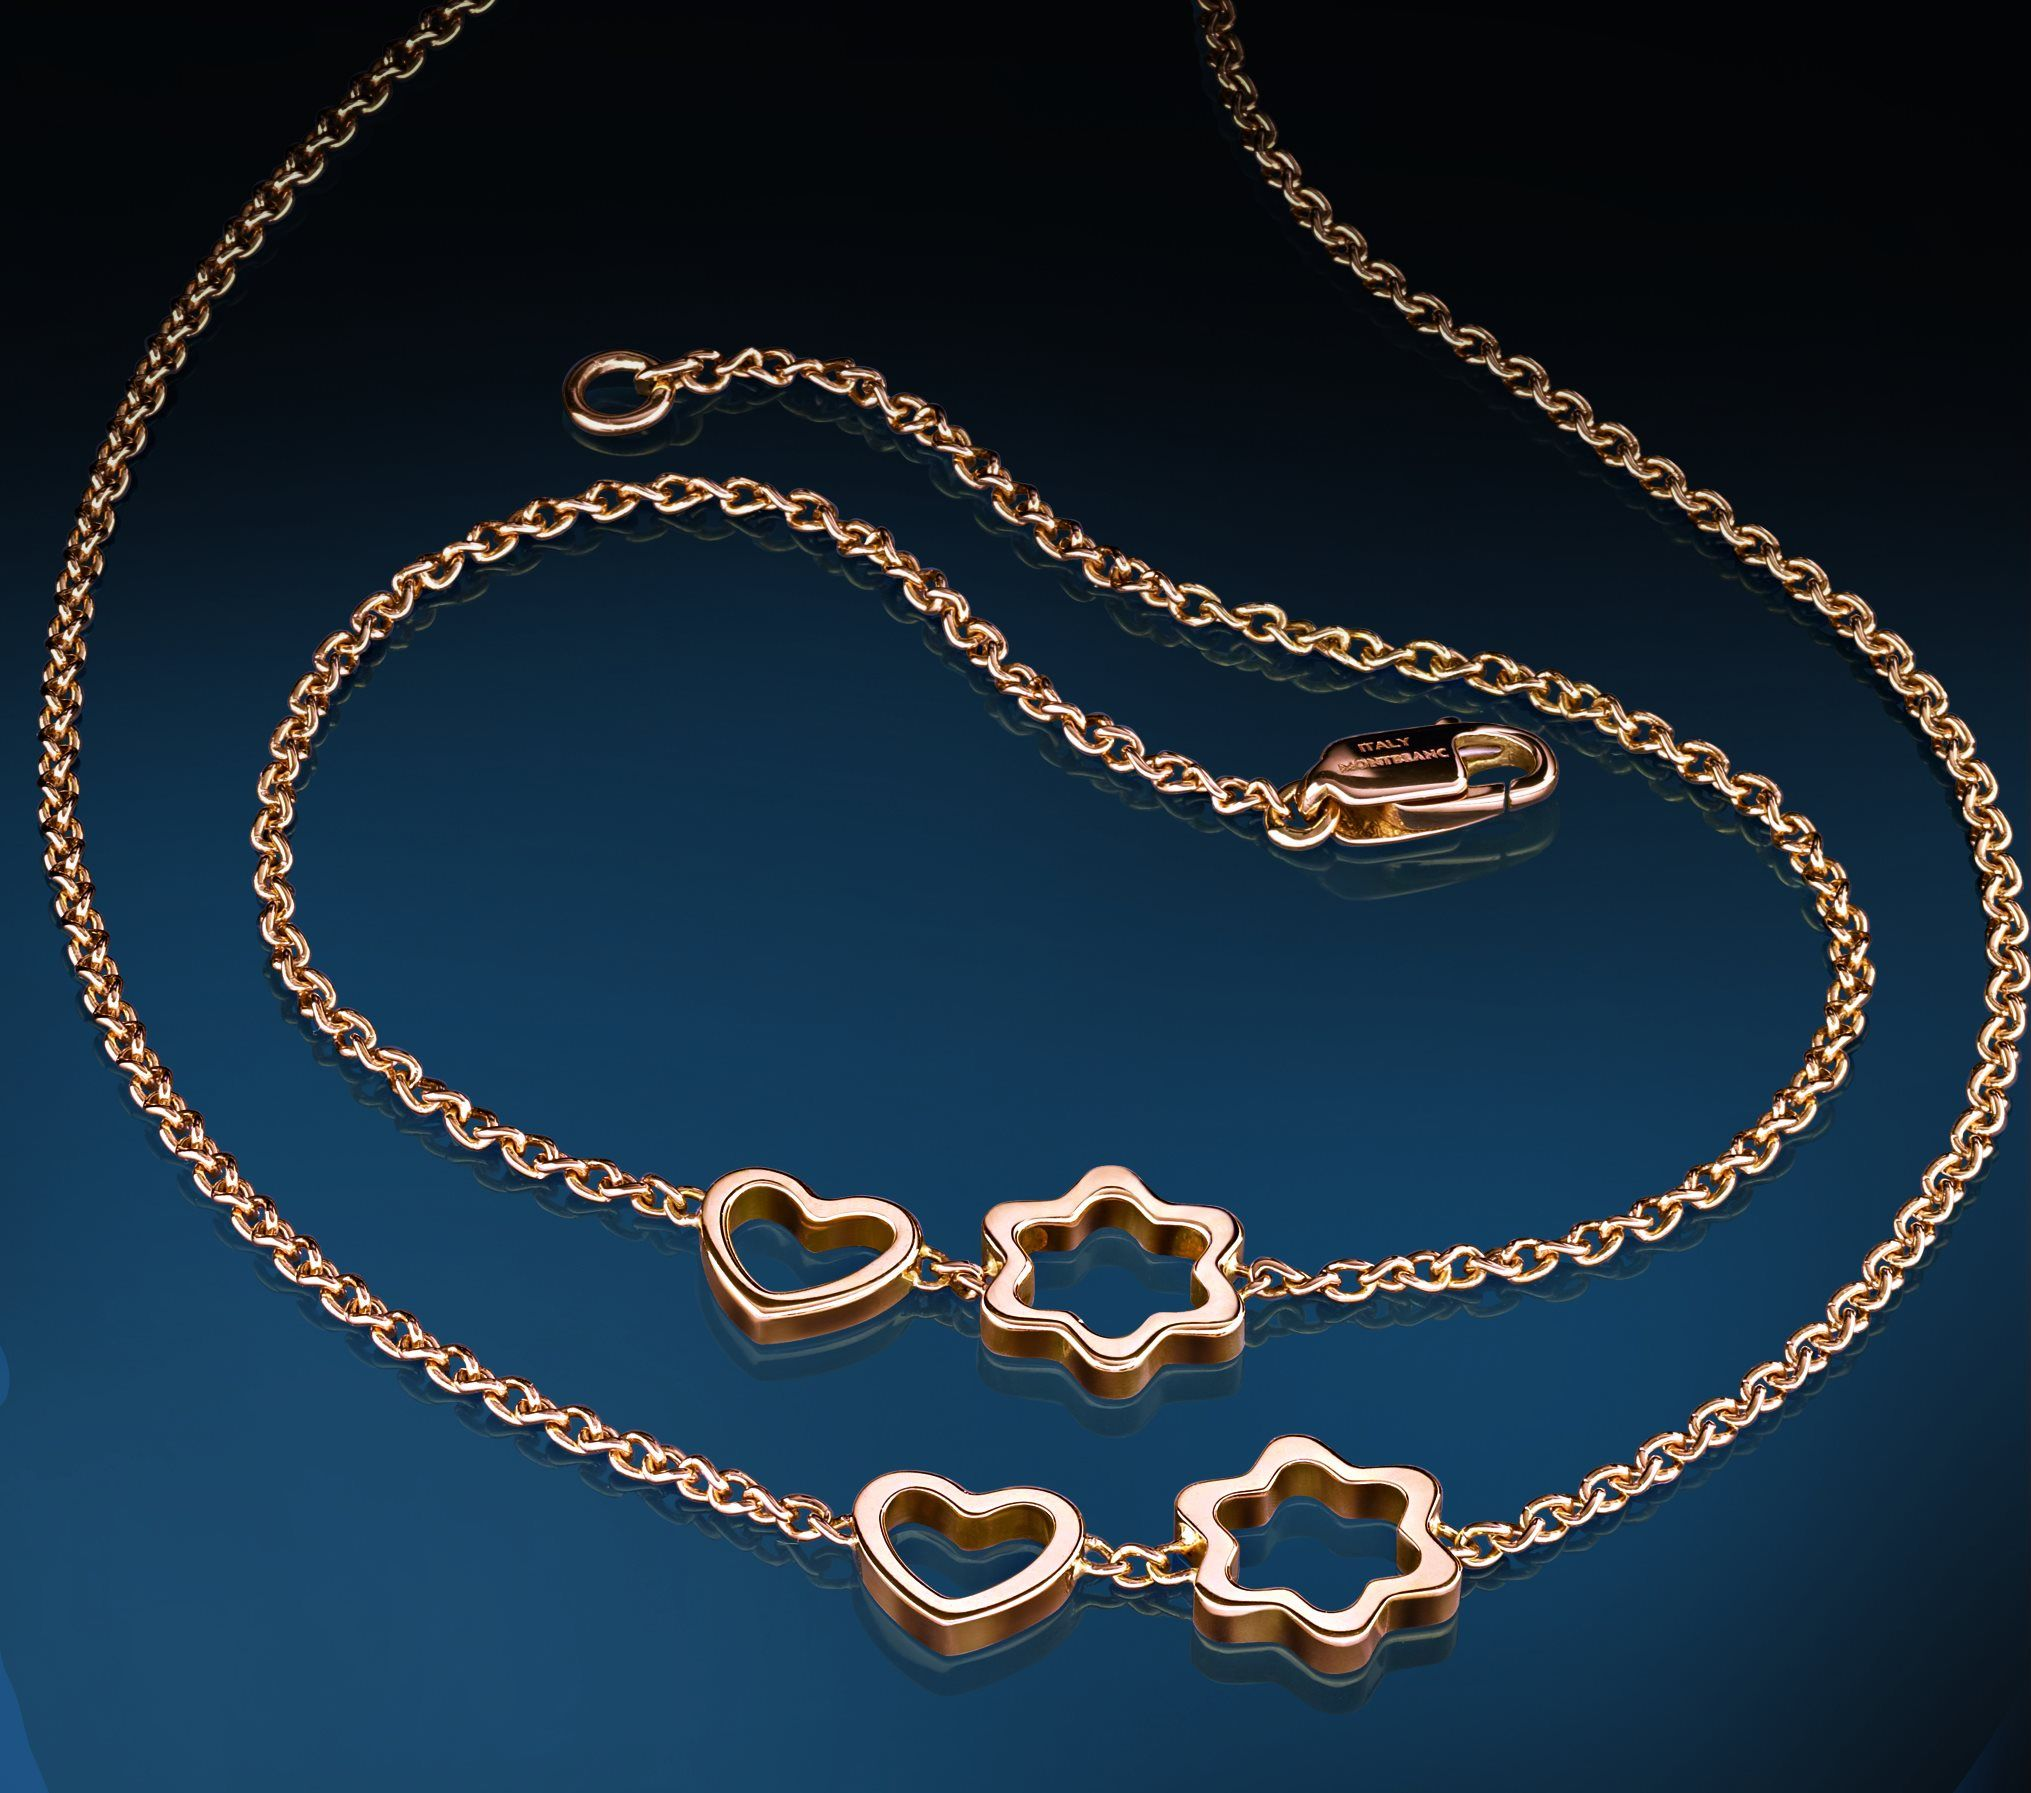 Montblanc 4810 rose gold bracelet and its matching necklace